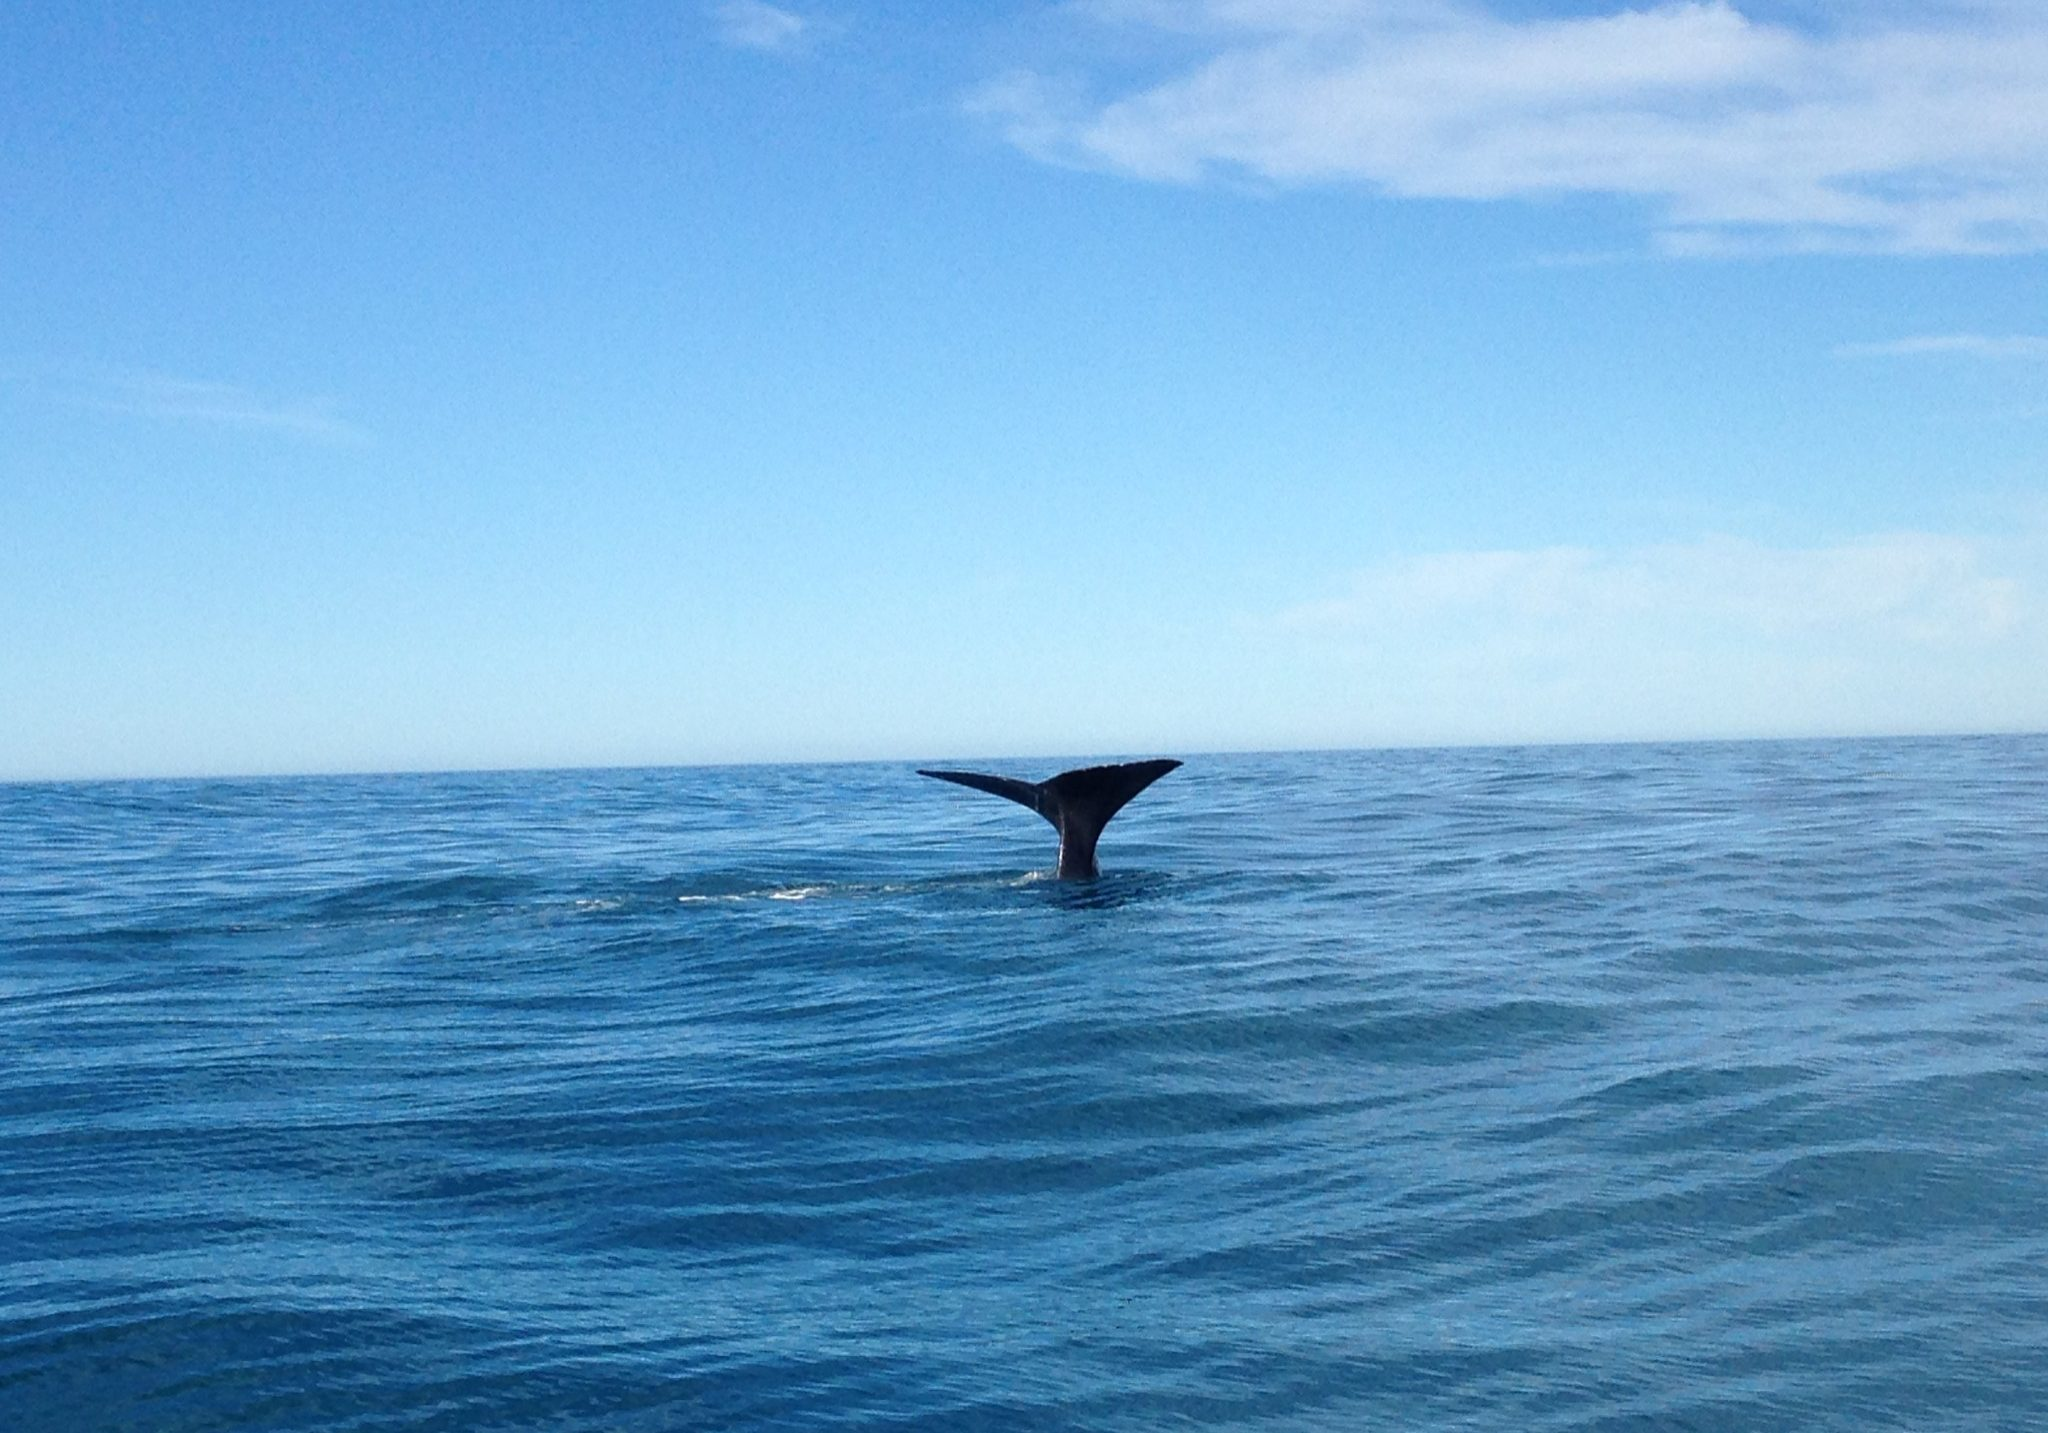 whale watching, Kaikoura, whales, boats, dolphins, sea, coast, wildlife, nature, nature watch